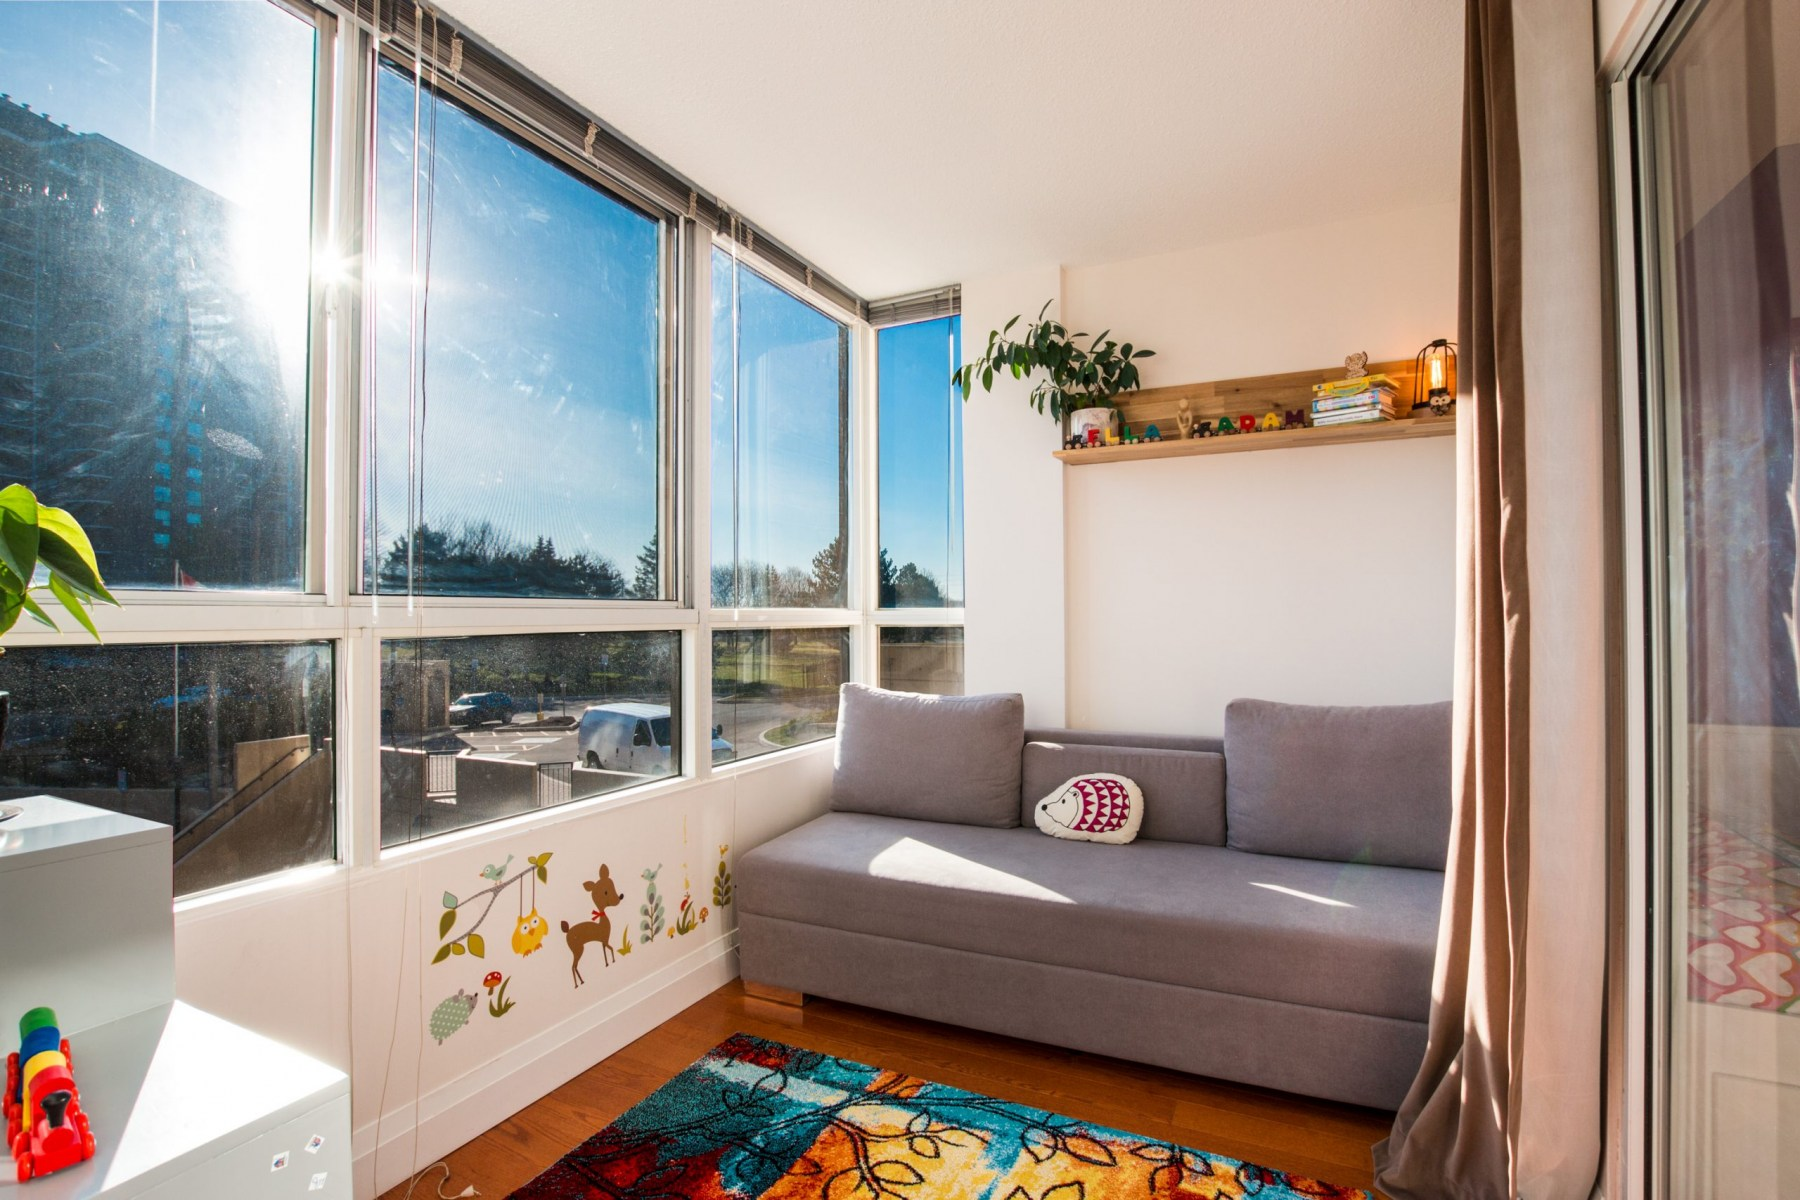 1485 Lakeshore Blvd East - #218 sunroom